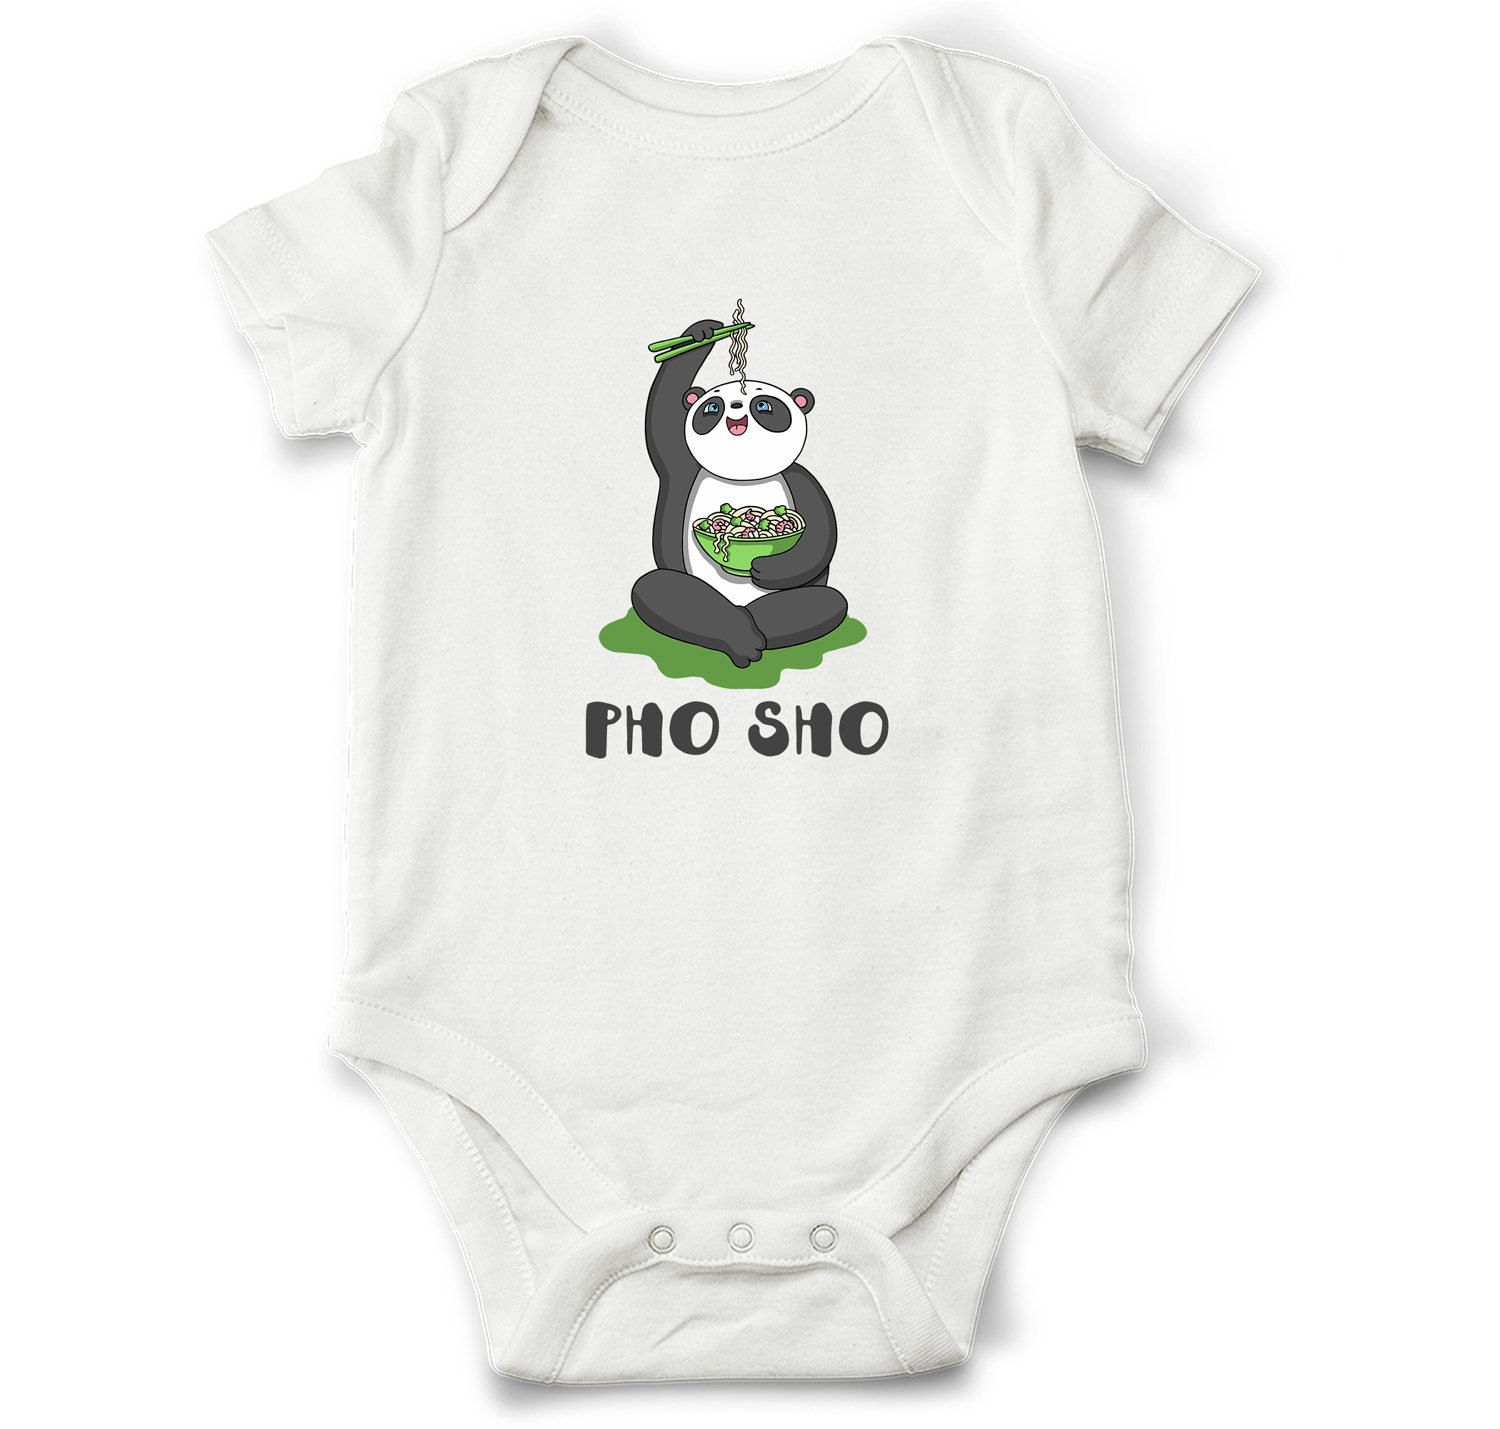 Baby t Funny baby bodysuit Pho Sho Unique baby shower t